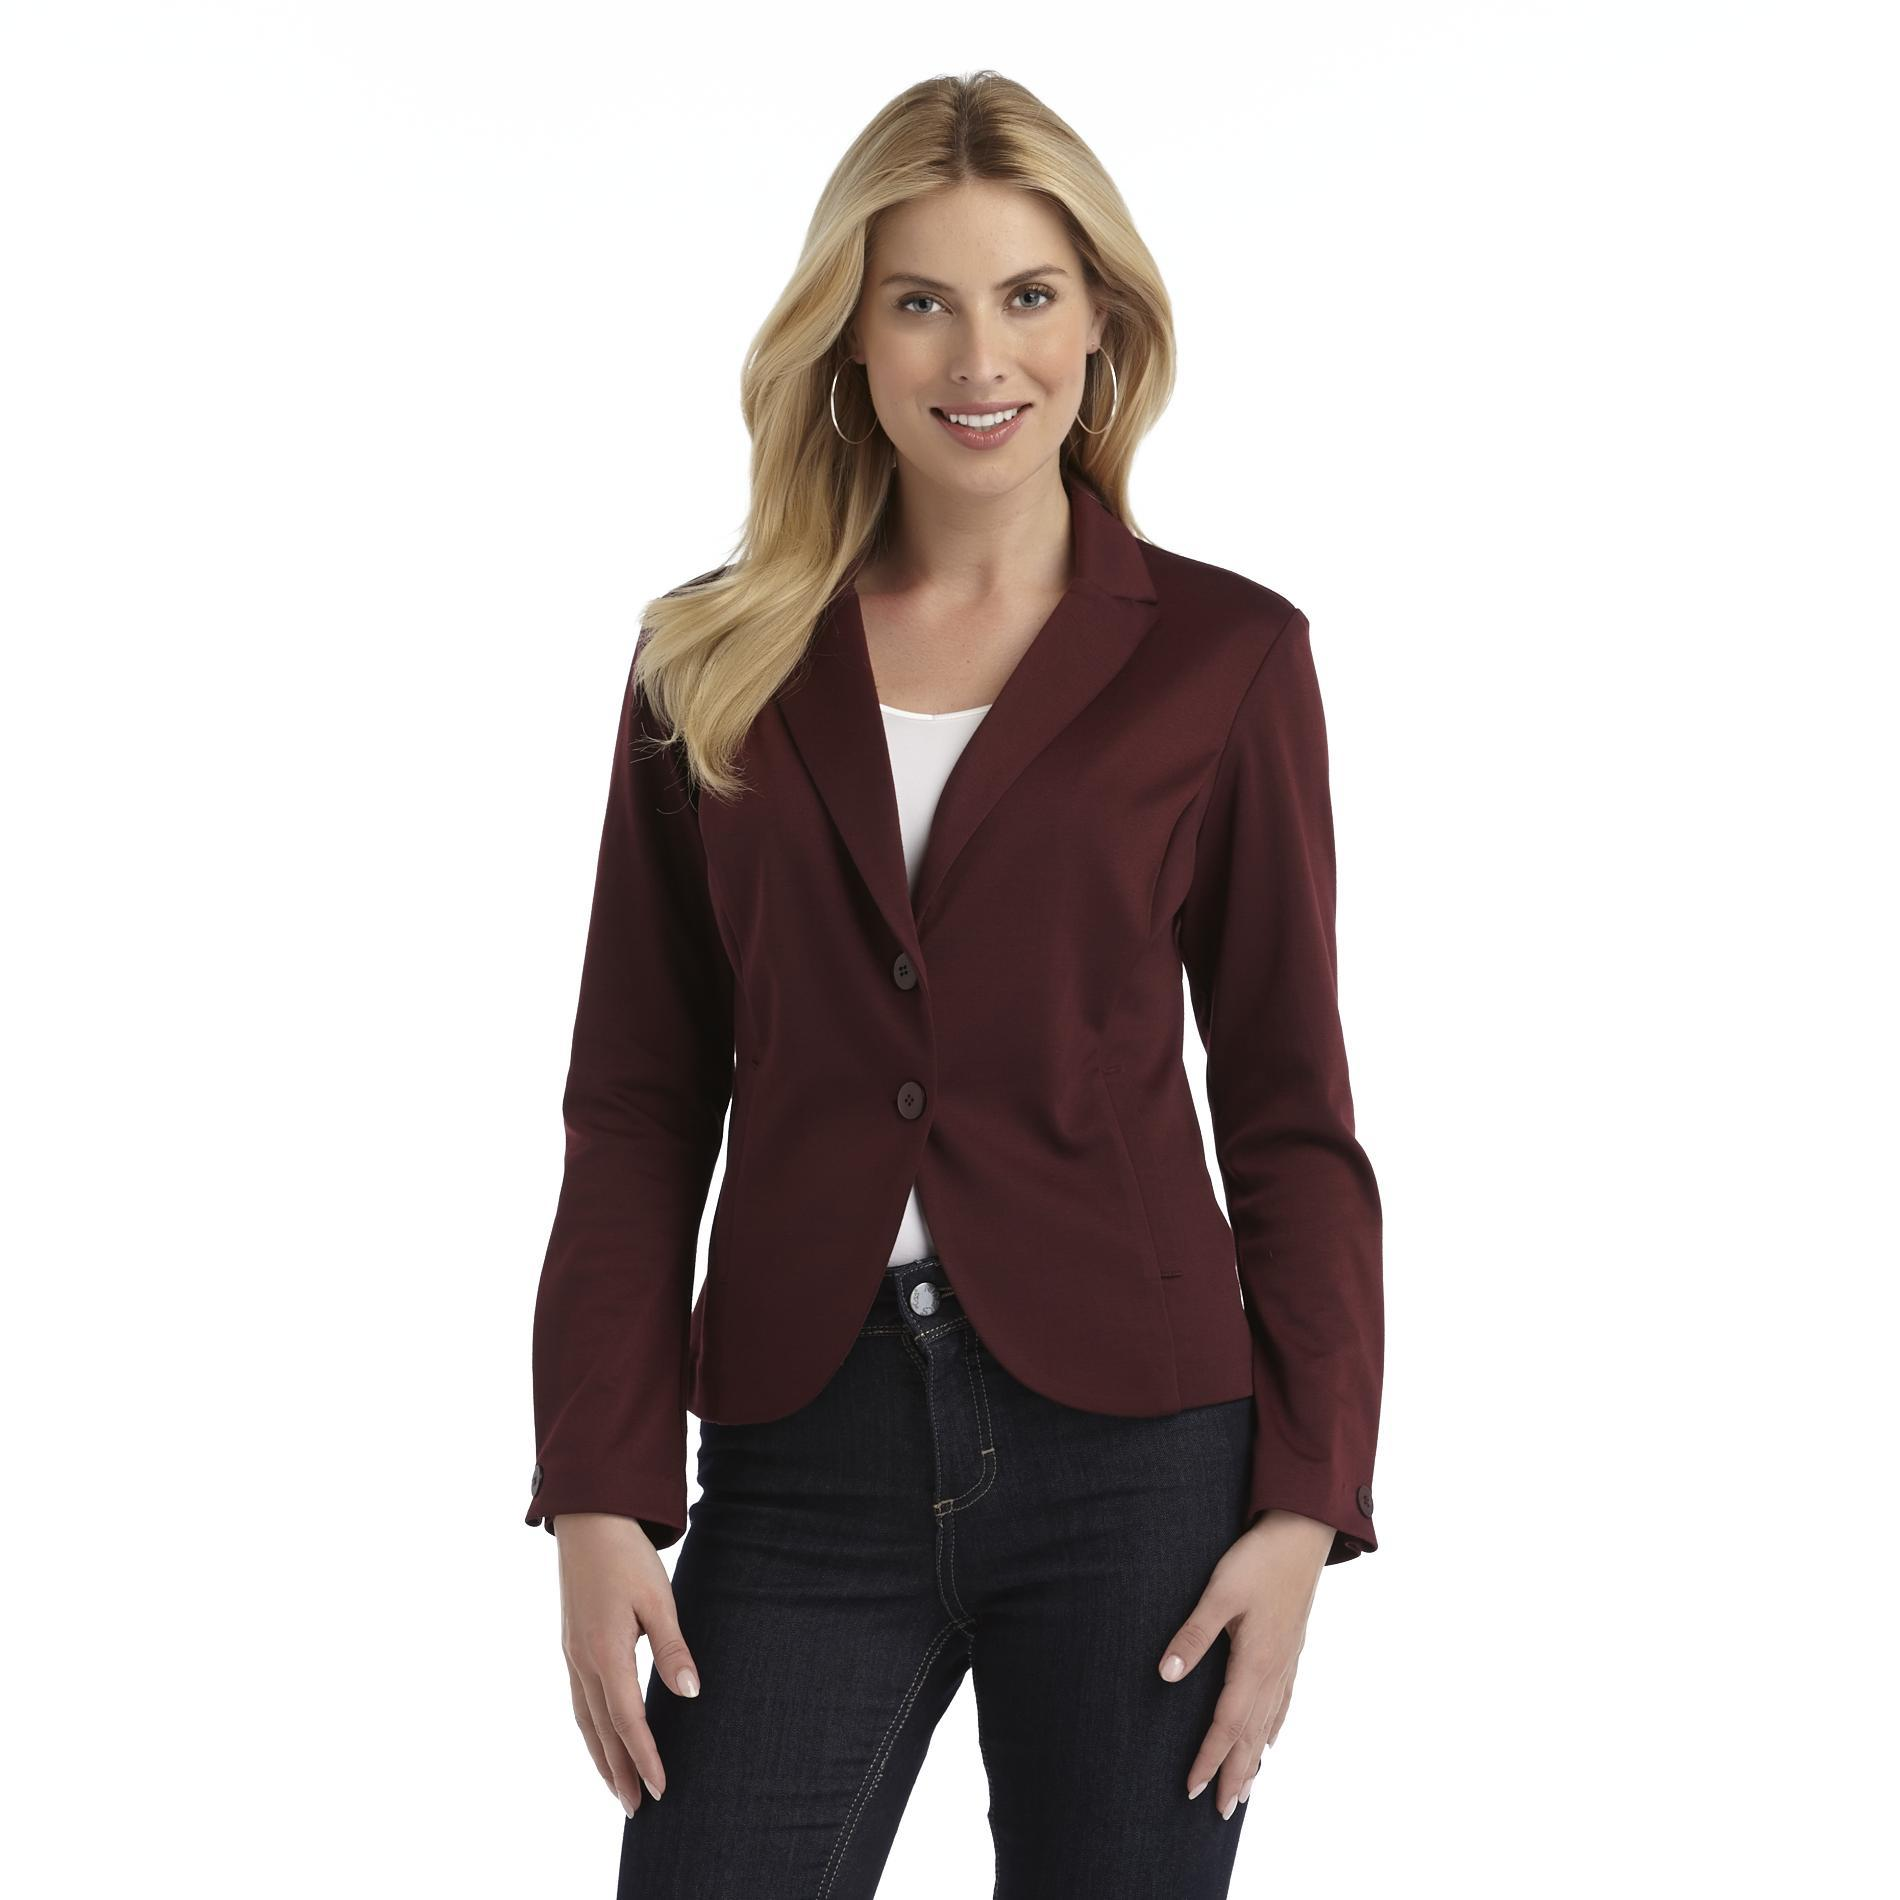 Metaphor Women's Peplum Blazer at Sears.com